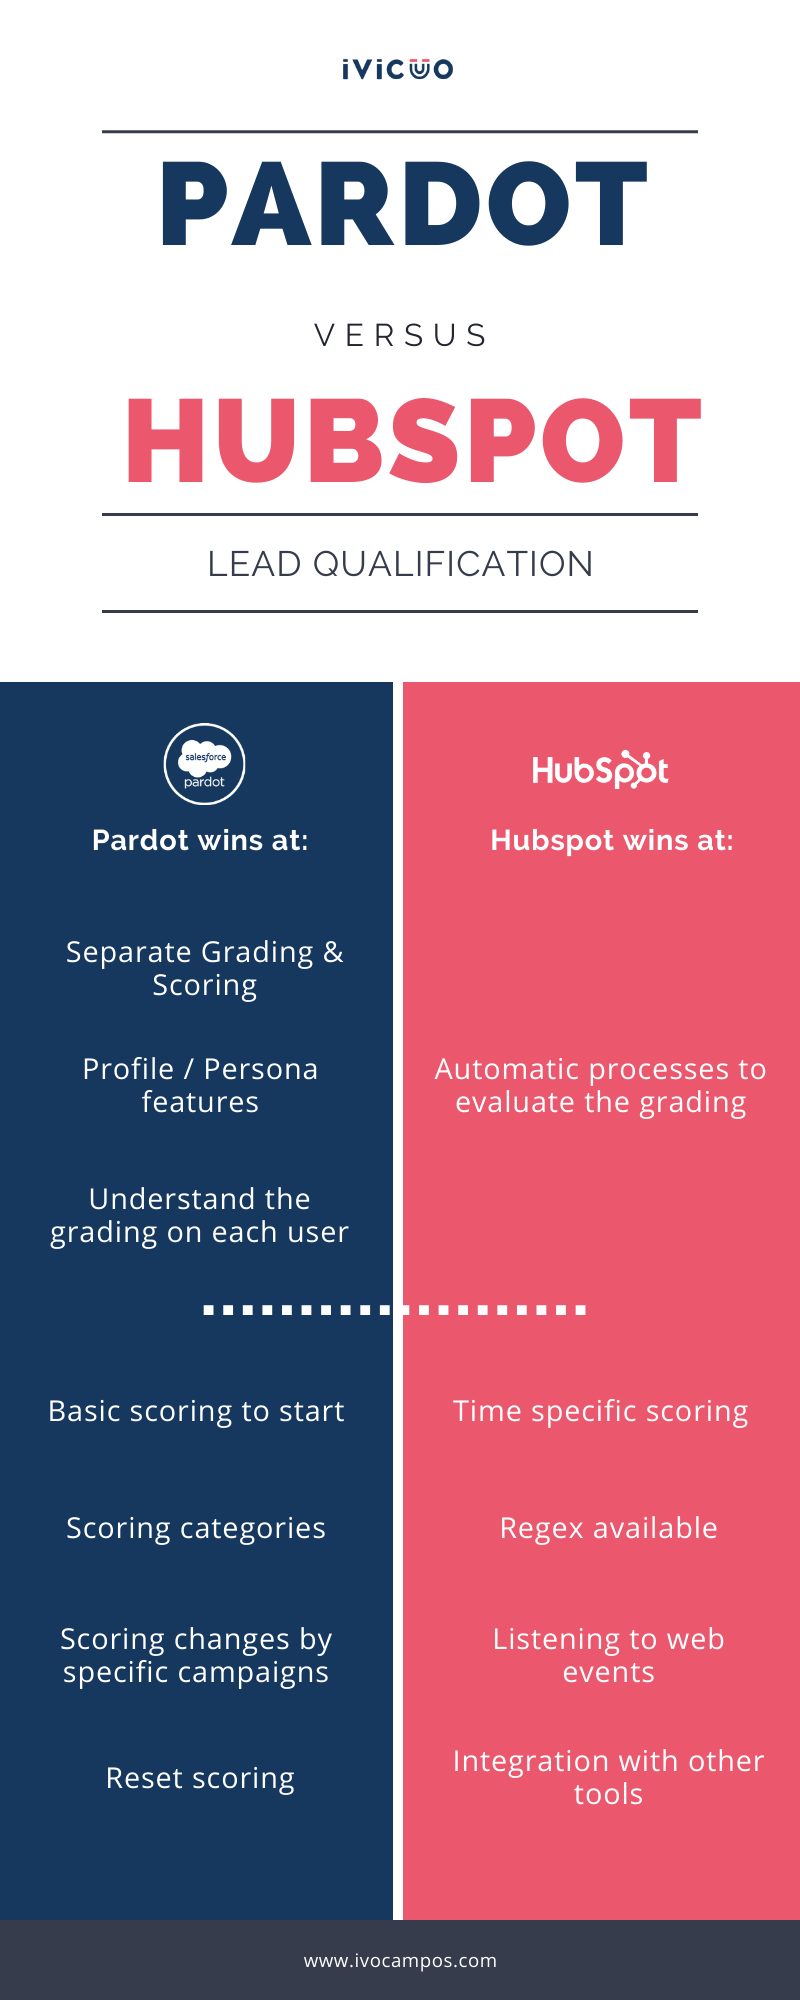 Pardot Vs Hubspot - Lead scoring and grading